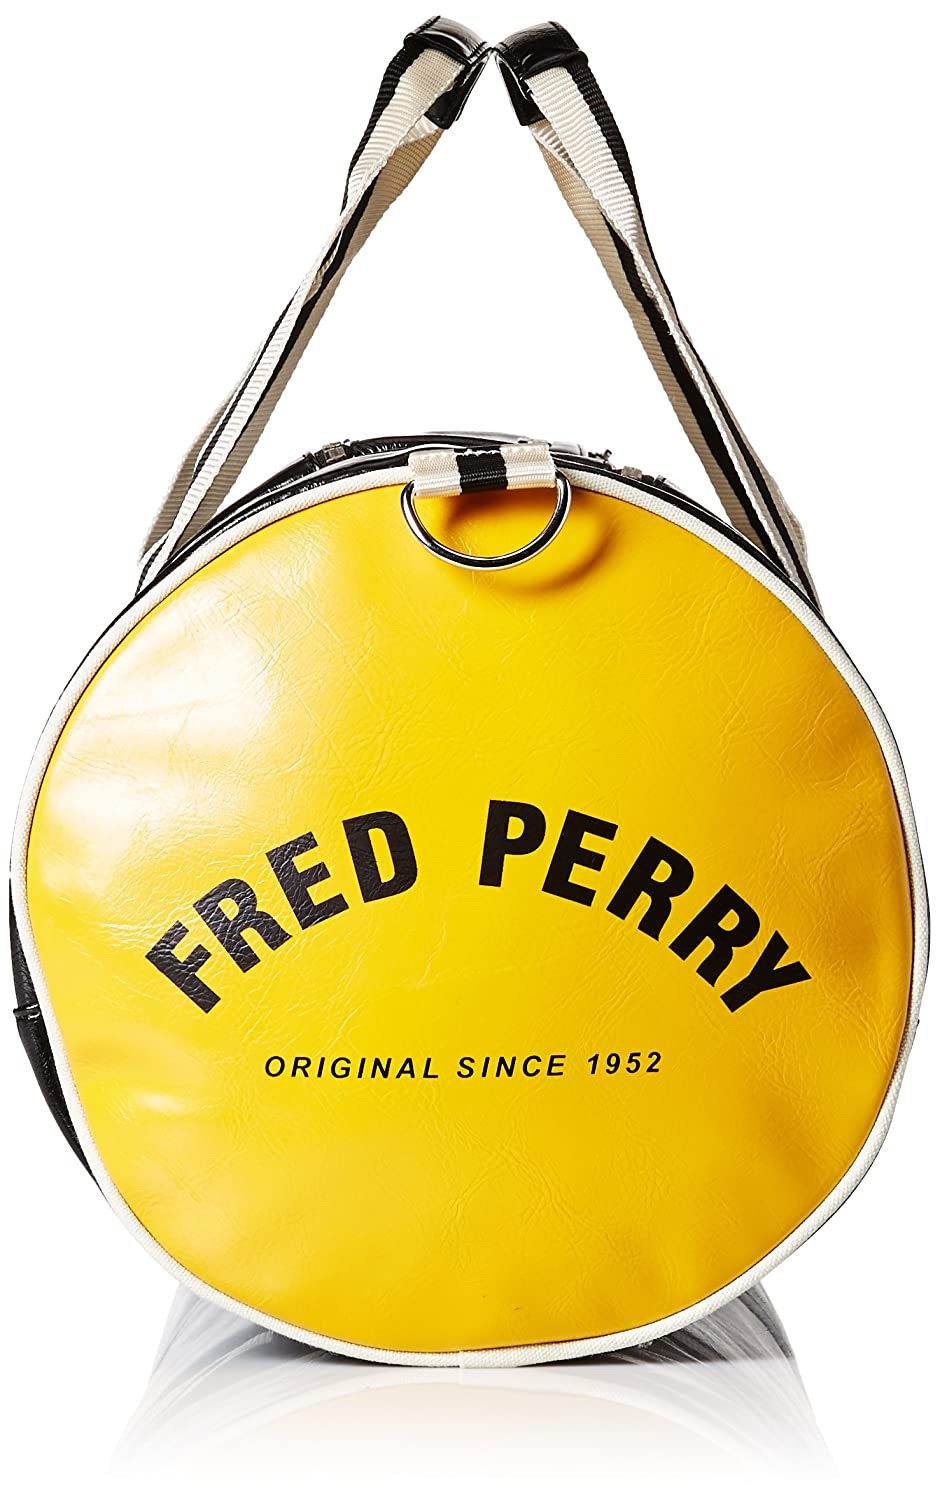 cac242217 Fred Perry Classic Barrel Bags Black Yellow - One Size: Amazon.co.uk: Shoes  & Bags